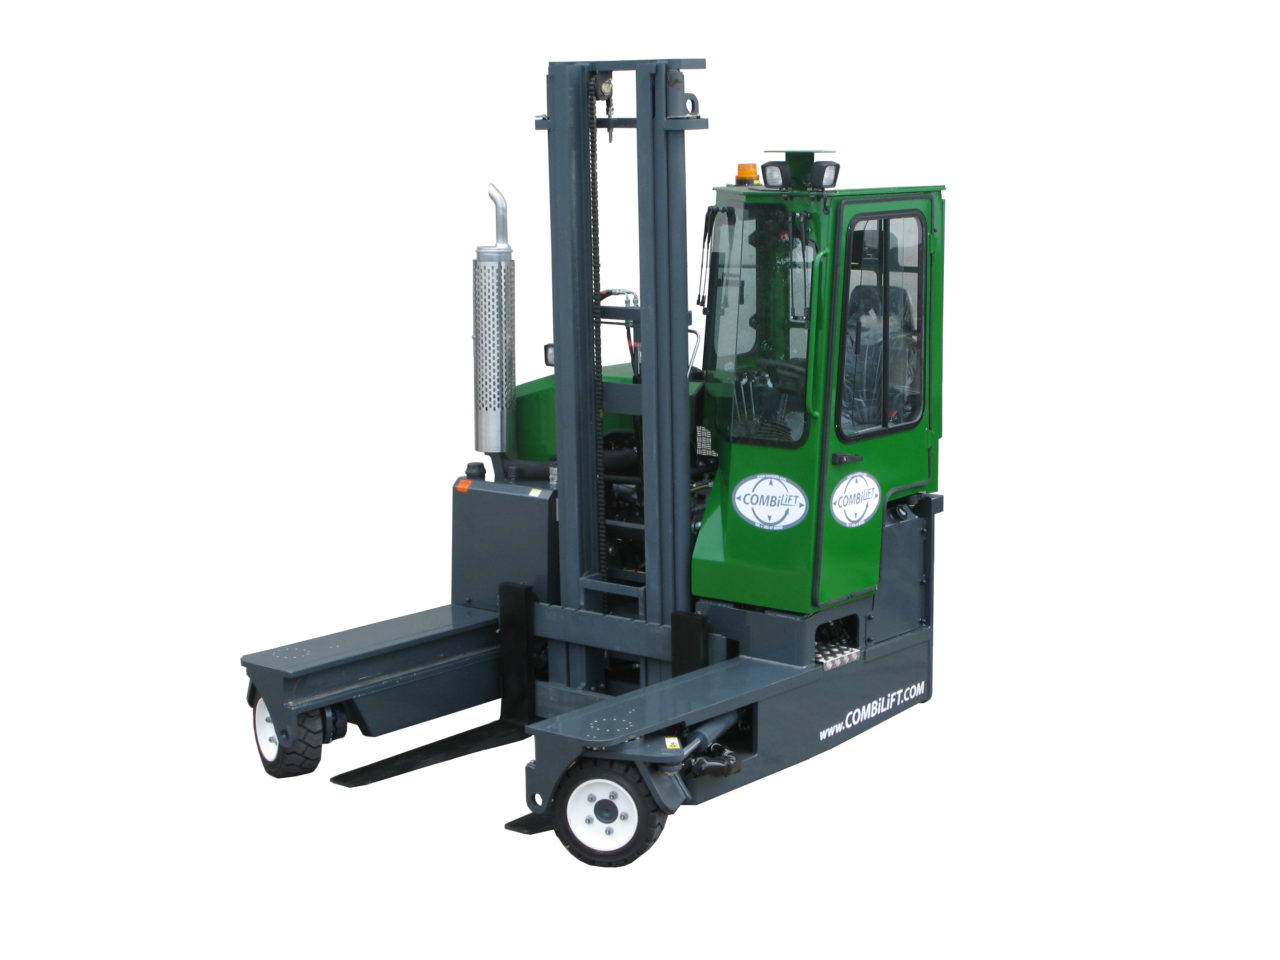 Hire combilift forklifts or purchase combilift forklifts.